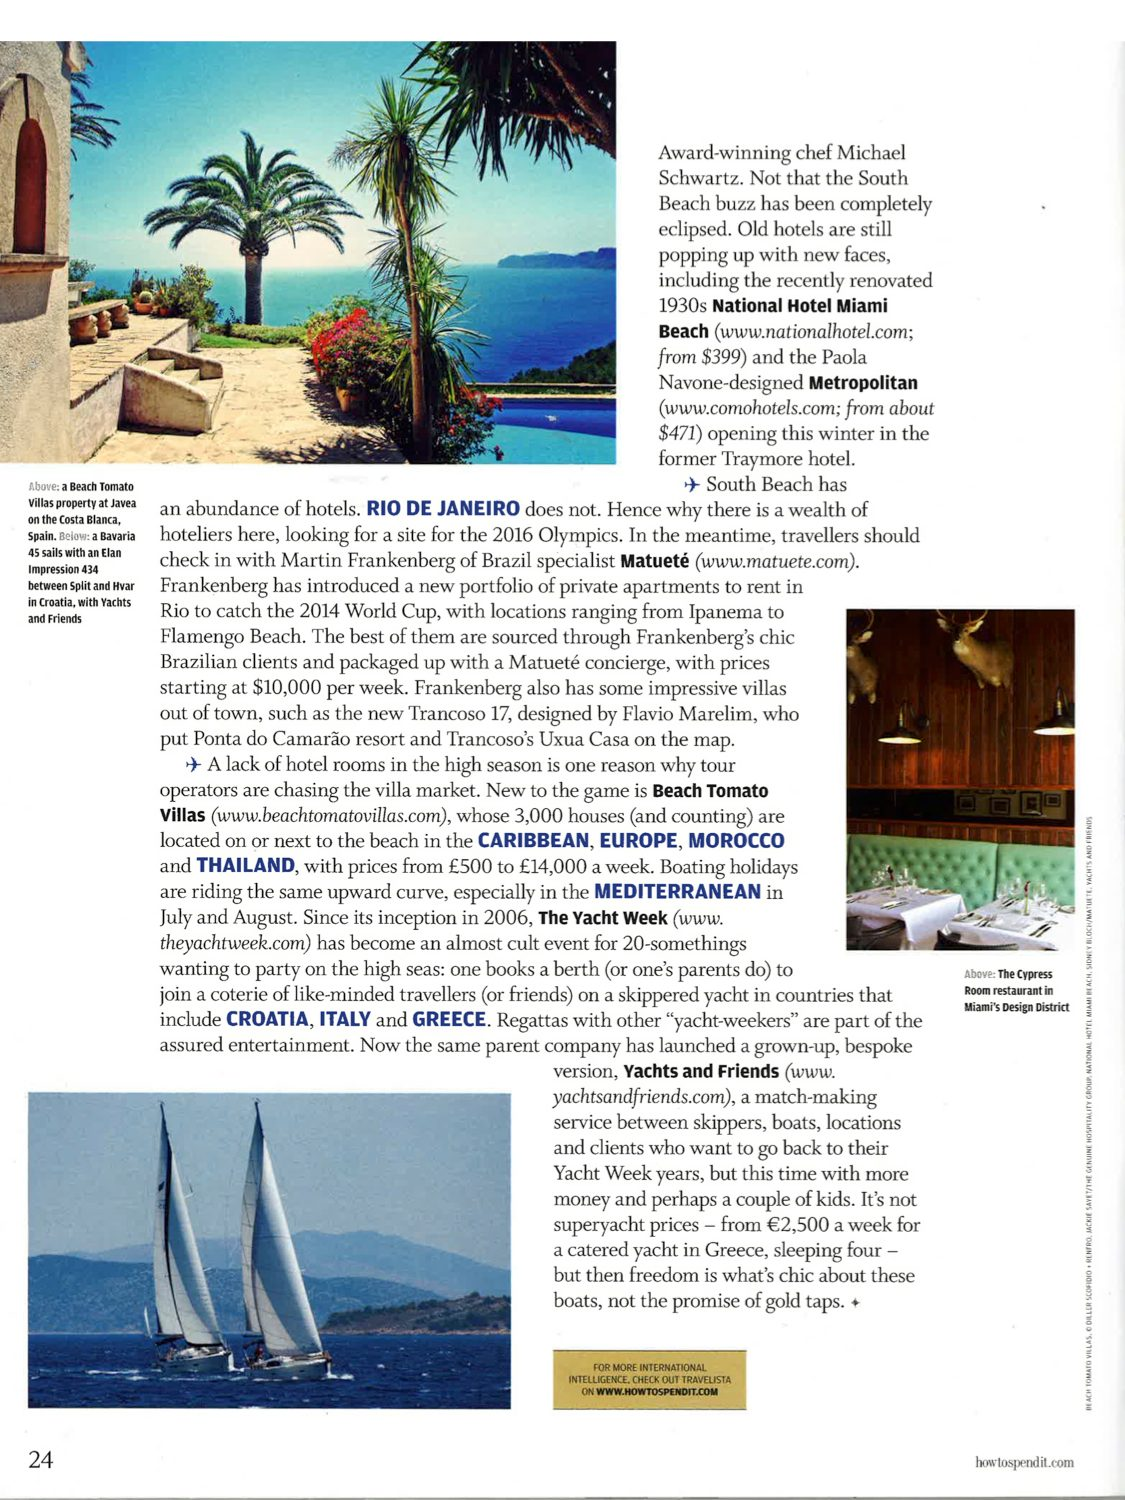 How to spend it: The Yacht Week has become a cult event - page 3